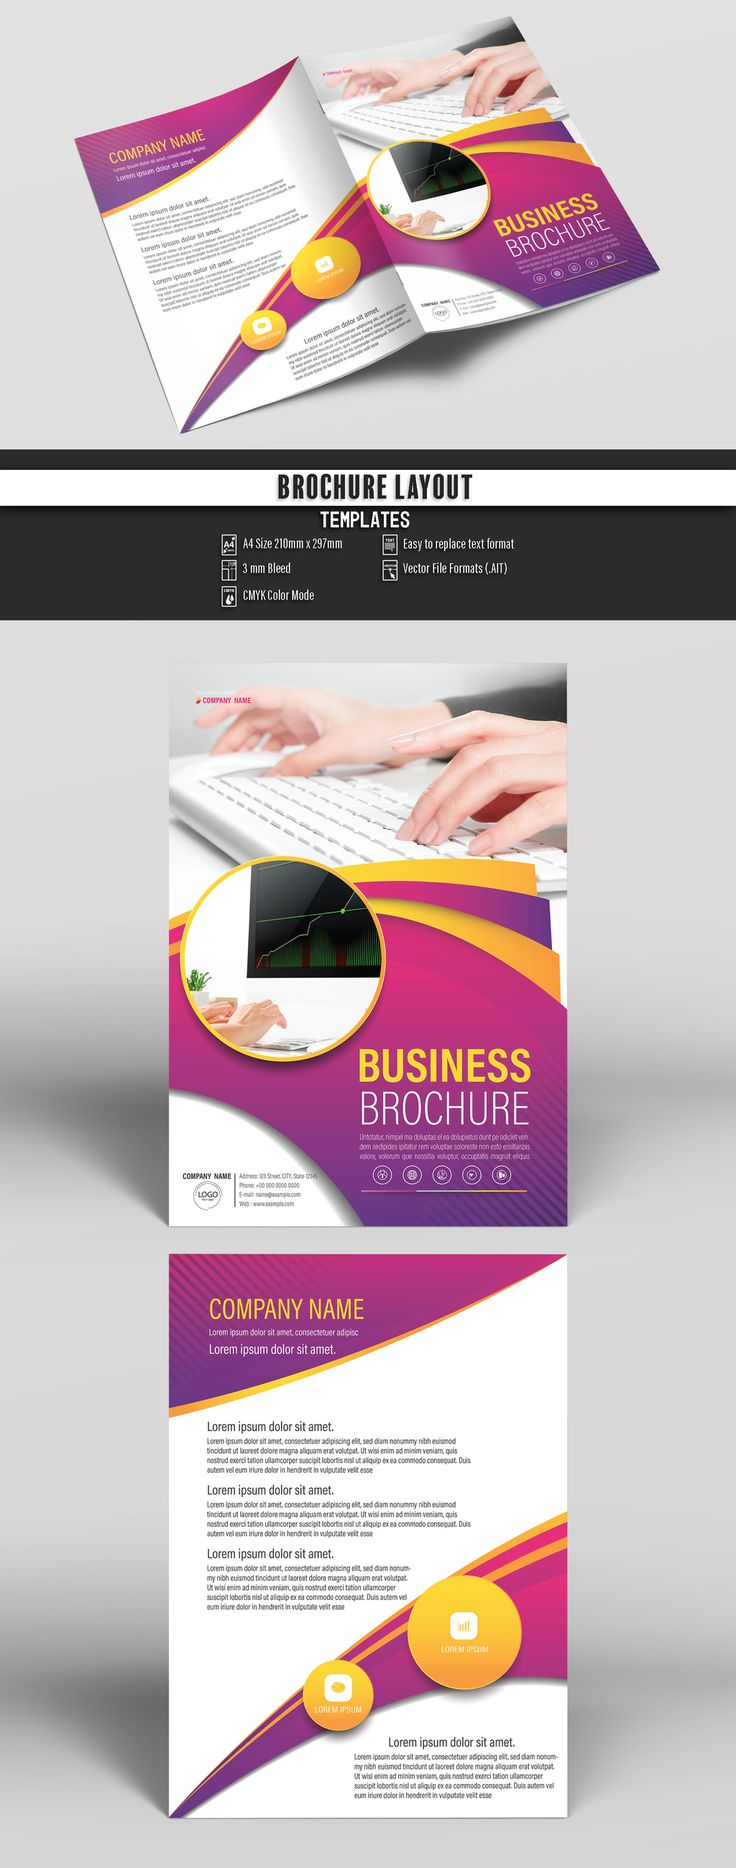 proposal report template%0A Buy this stock template and explore similar templates at Adobe Stock    Adobe Stock  Brochure  Business  Proposal  Booklet  Flyer  Template  Design   Layout